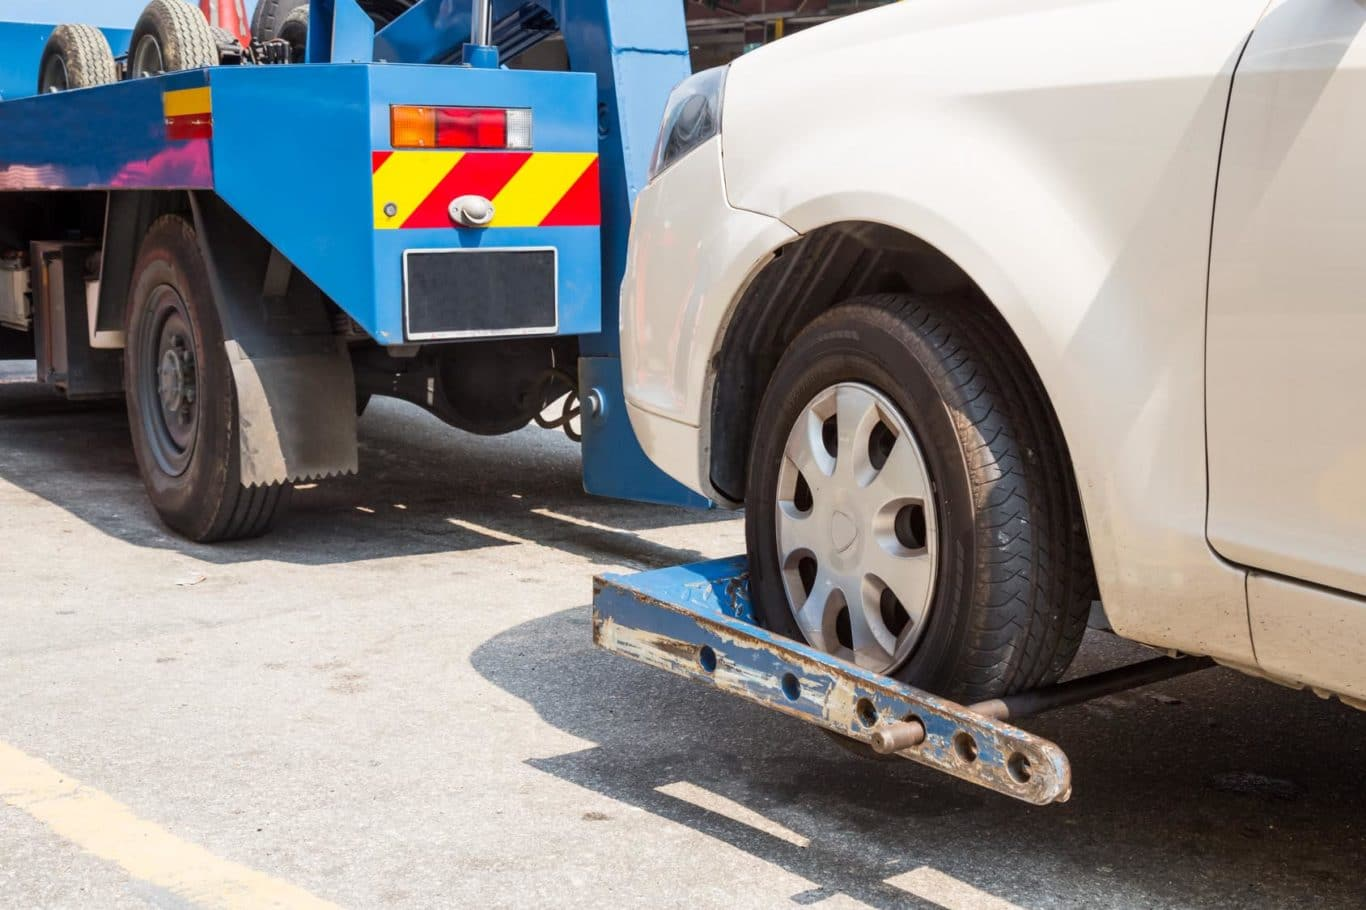 Woodenbridge expert Car Towing services